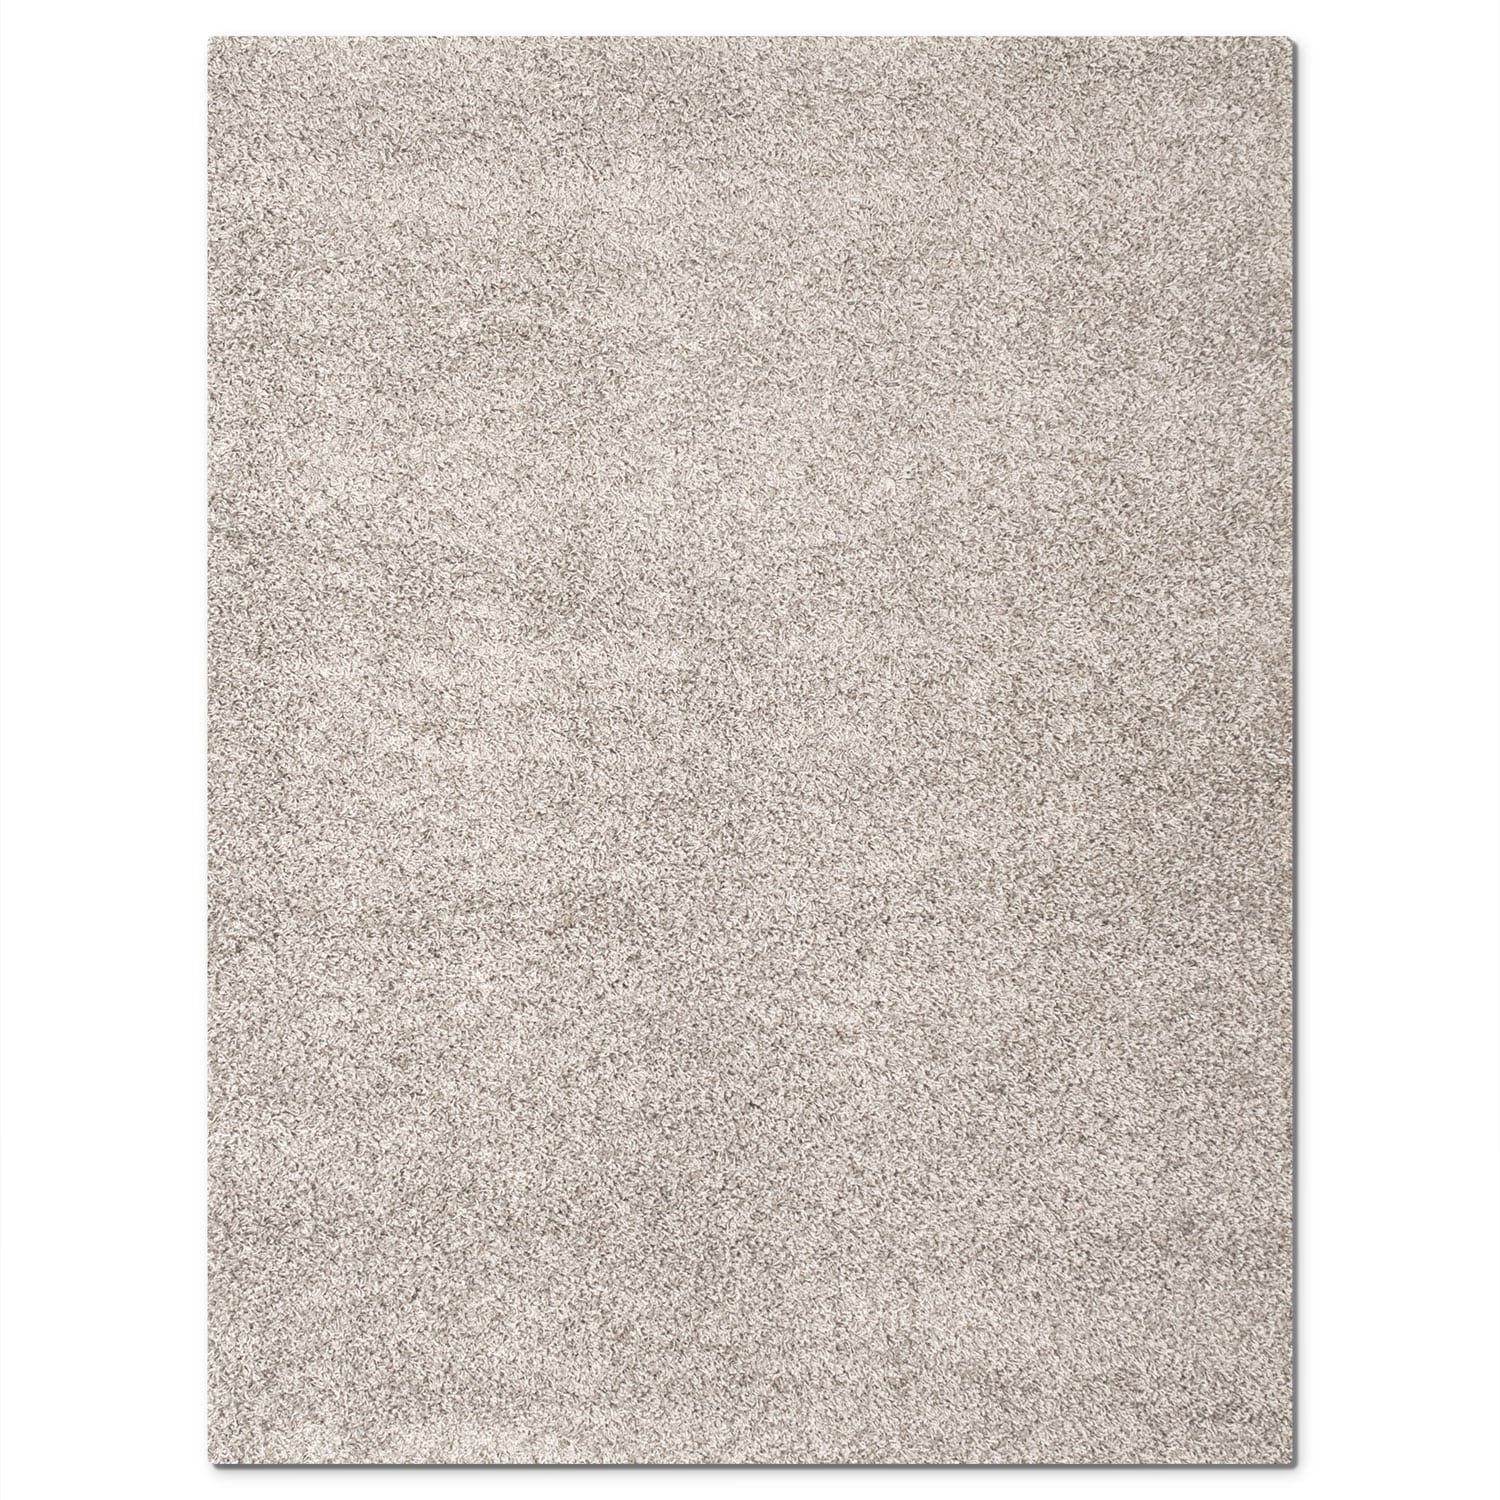 Rugs - Domino Gray Shag Area Rug (8' x 10')